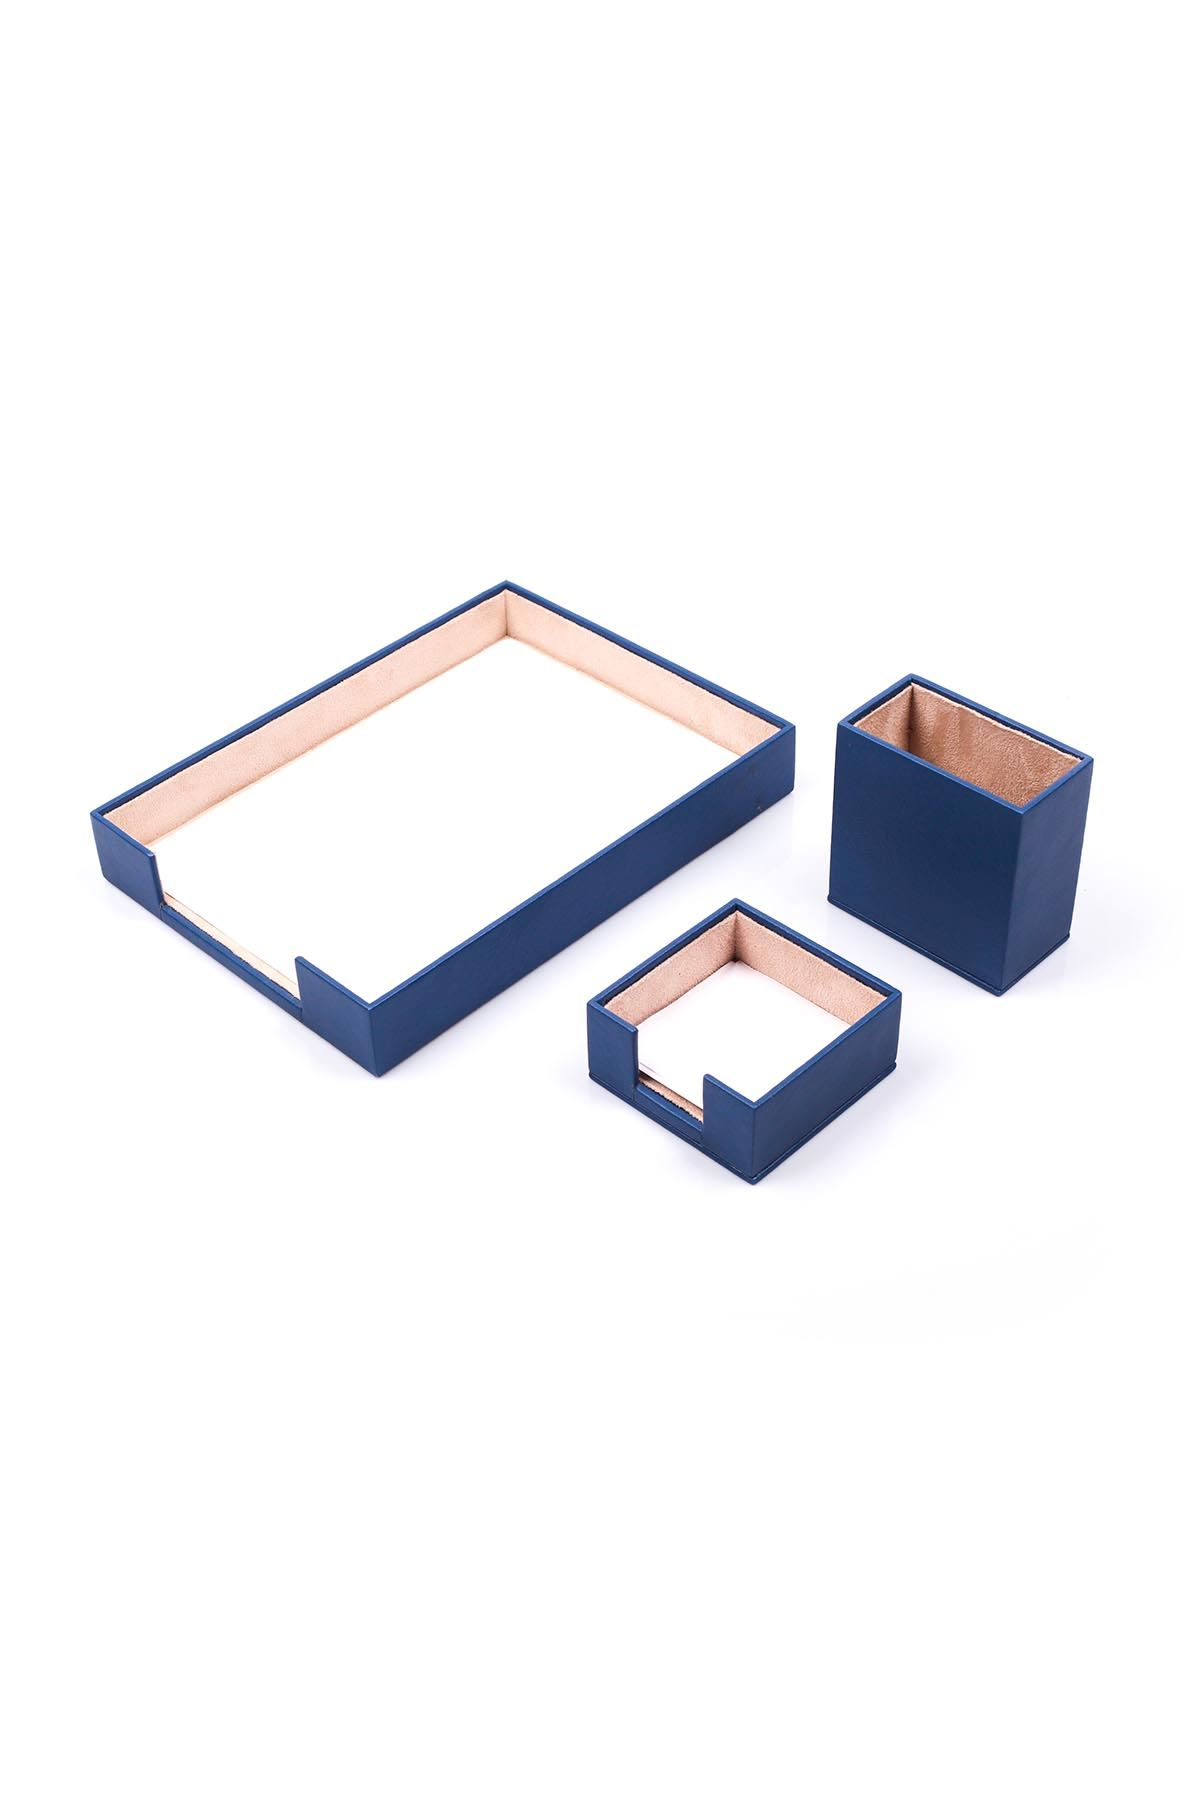 Document Tray With 2 Accessories Blue| Desk Set Accessories | Desktop Accessories | Desk Accessories | Desk Organizers